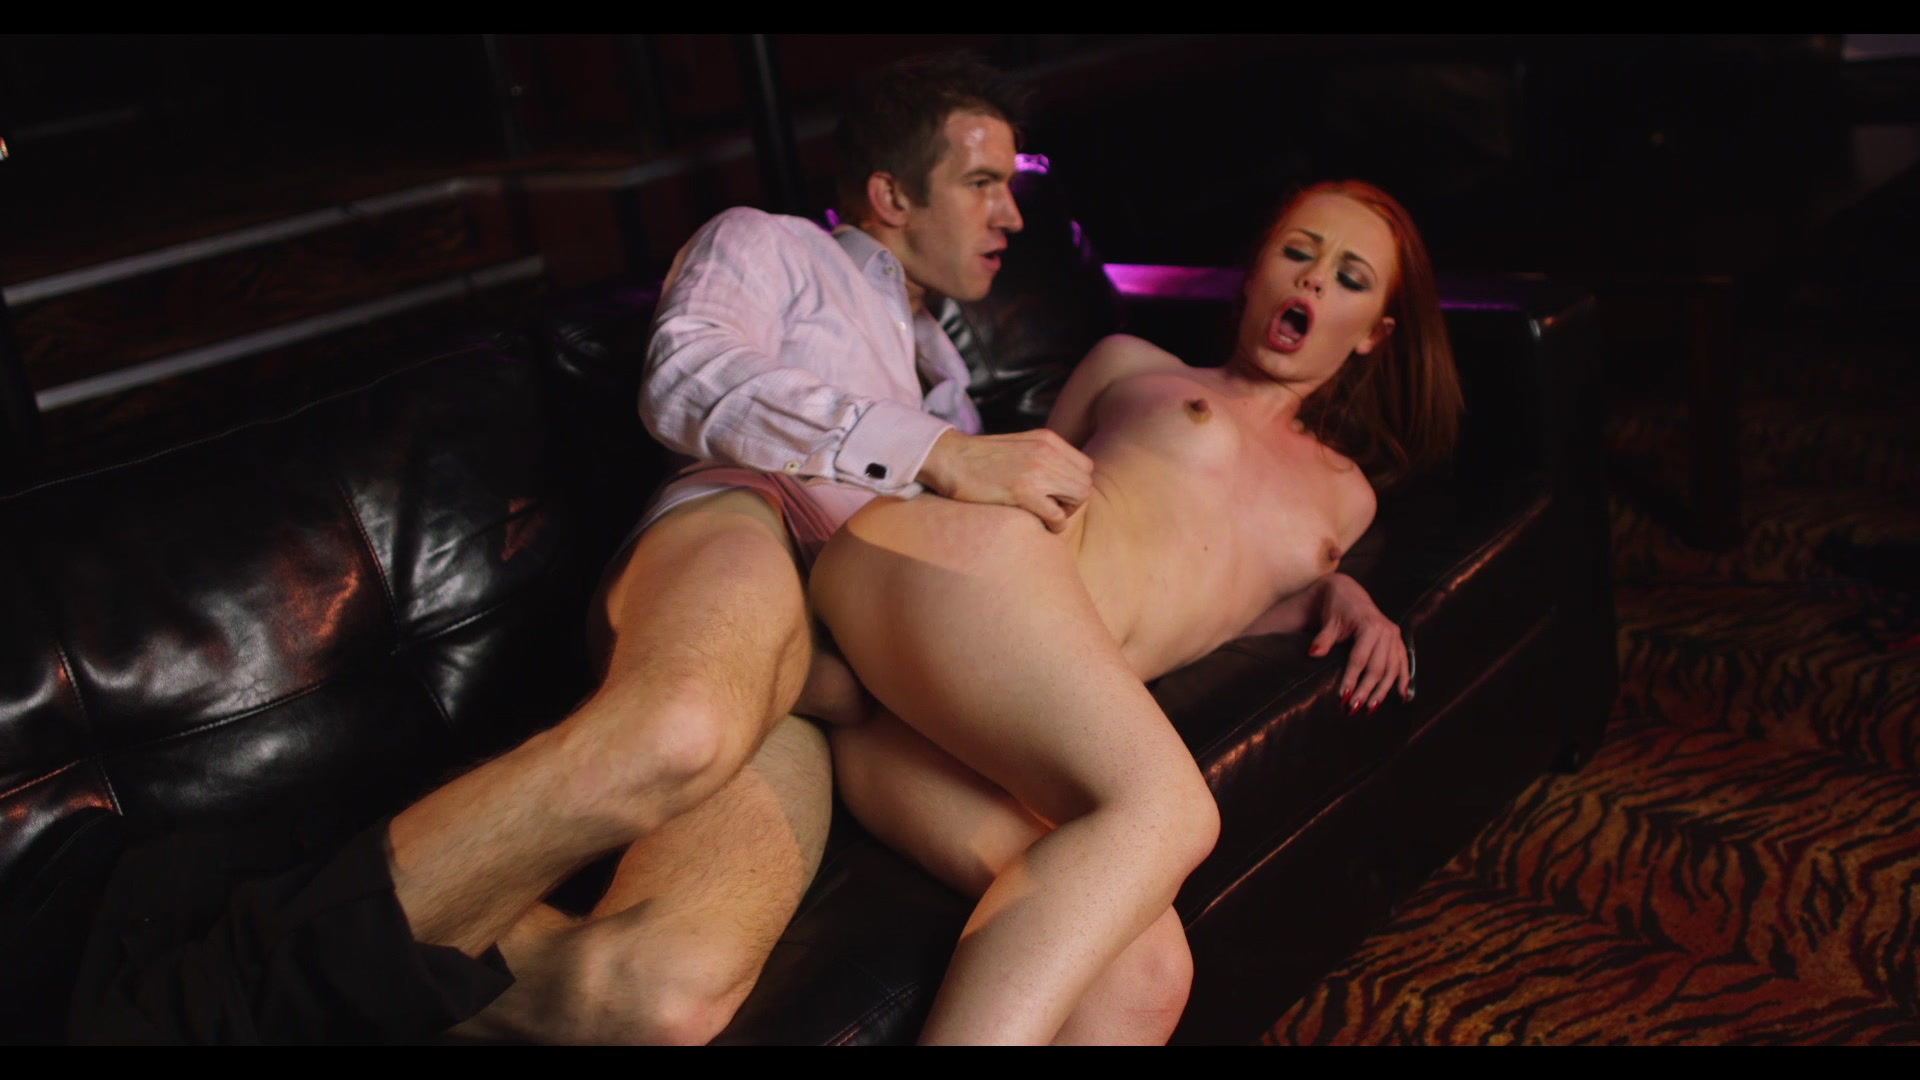 Scene with Ella Hughes - image 19 out of 20